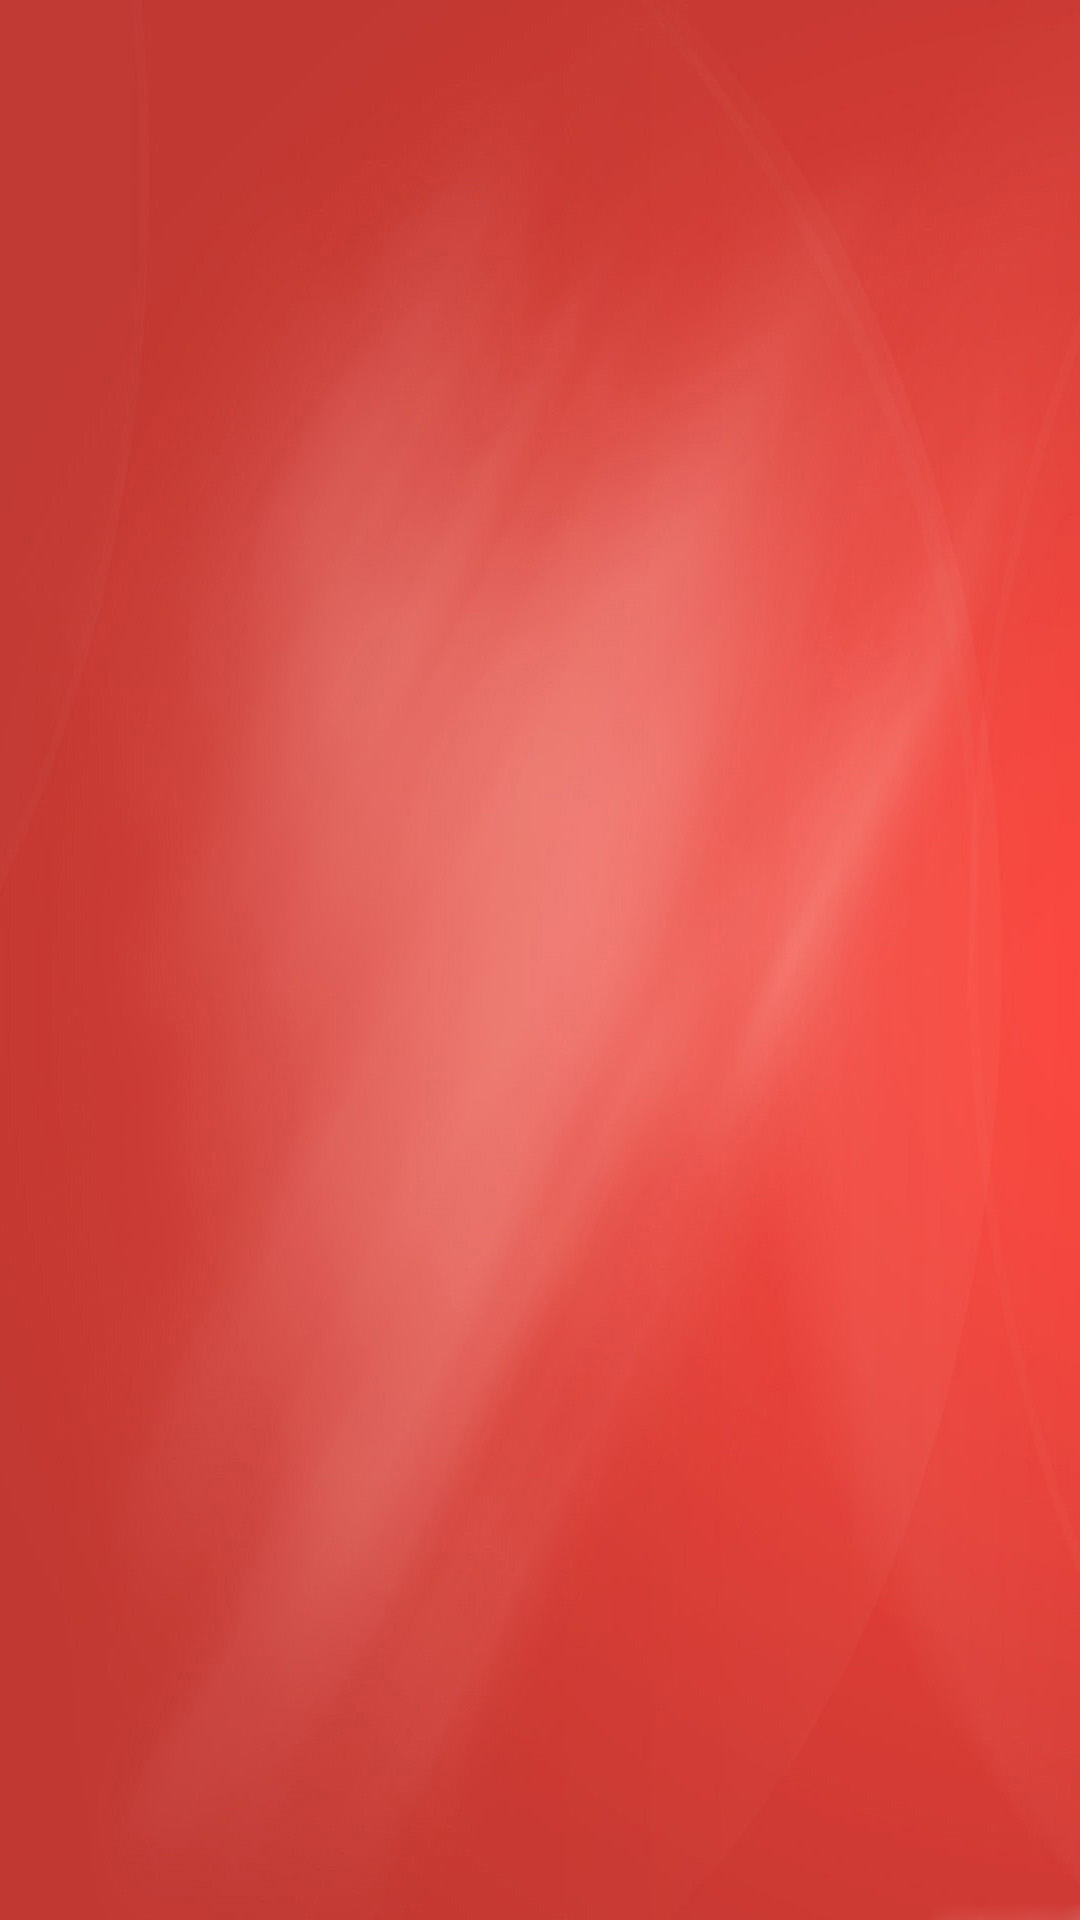 Best Free Wallpaper App For Iphone X Simple Red Angled Gradient Best Htc One Wallpapers